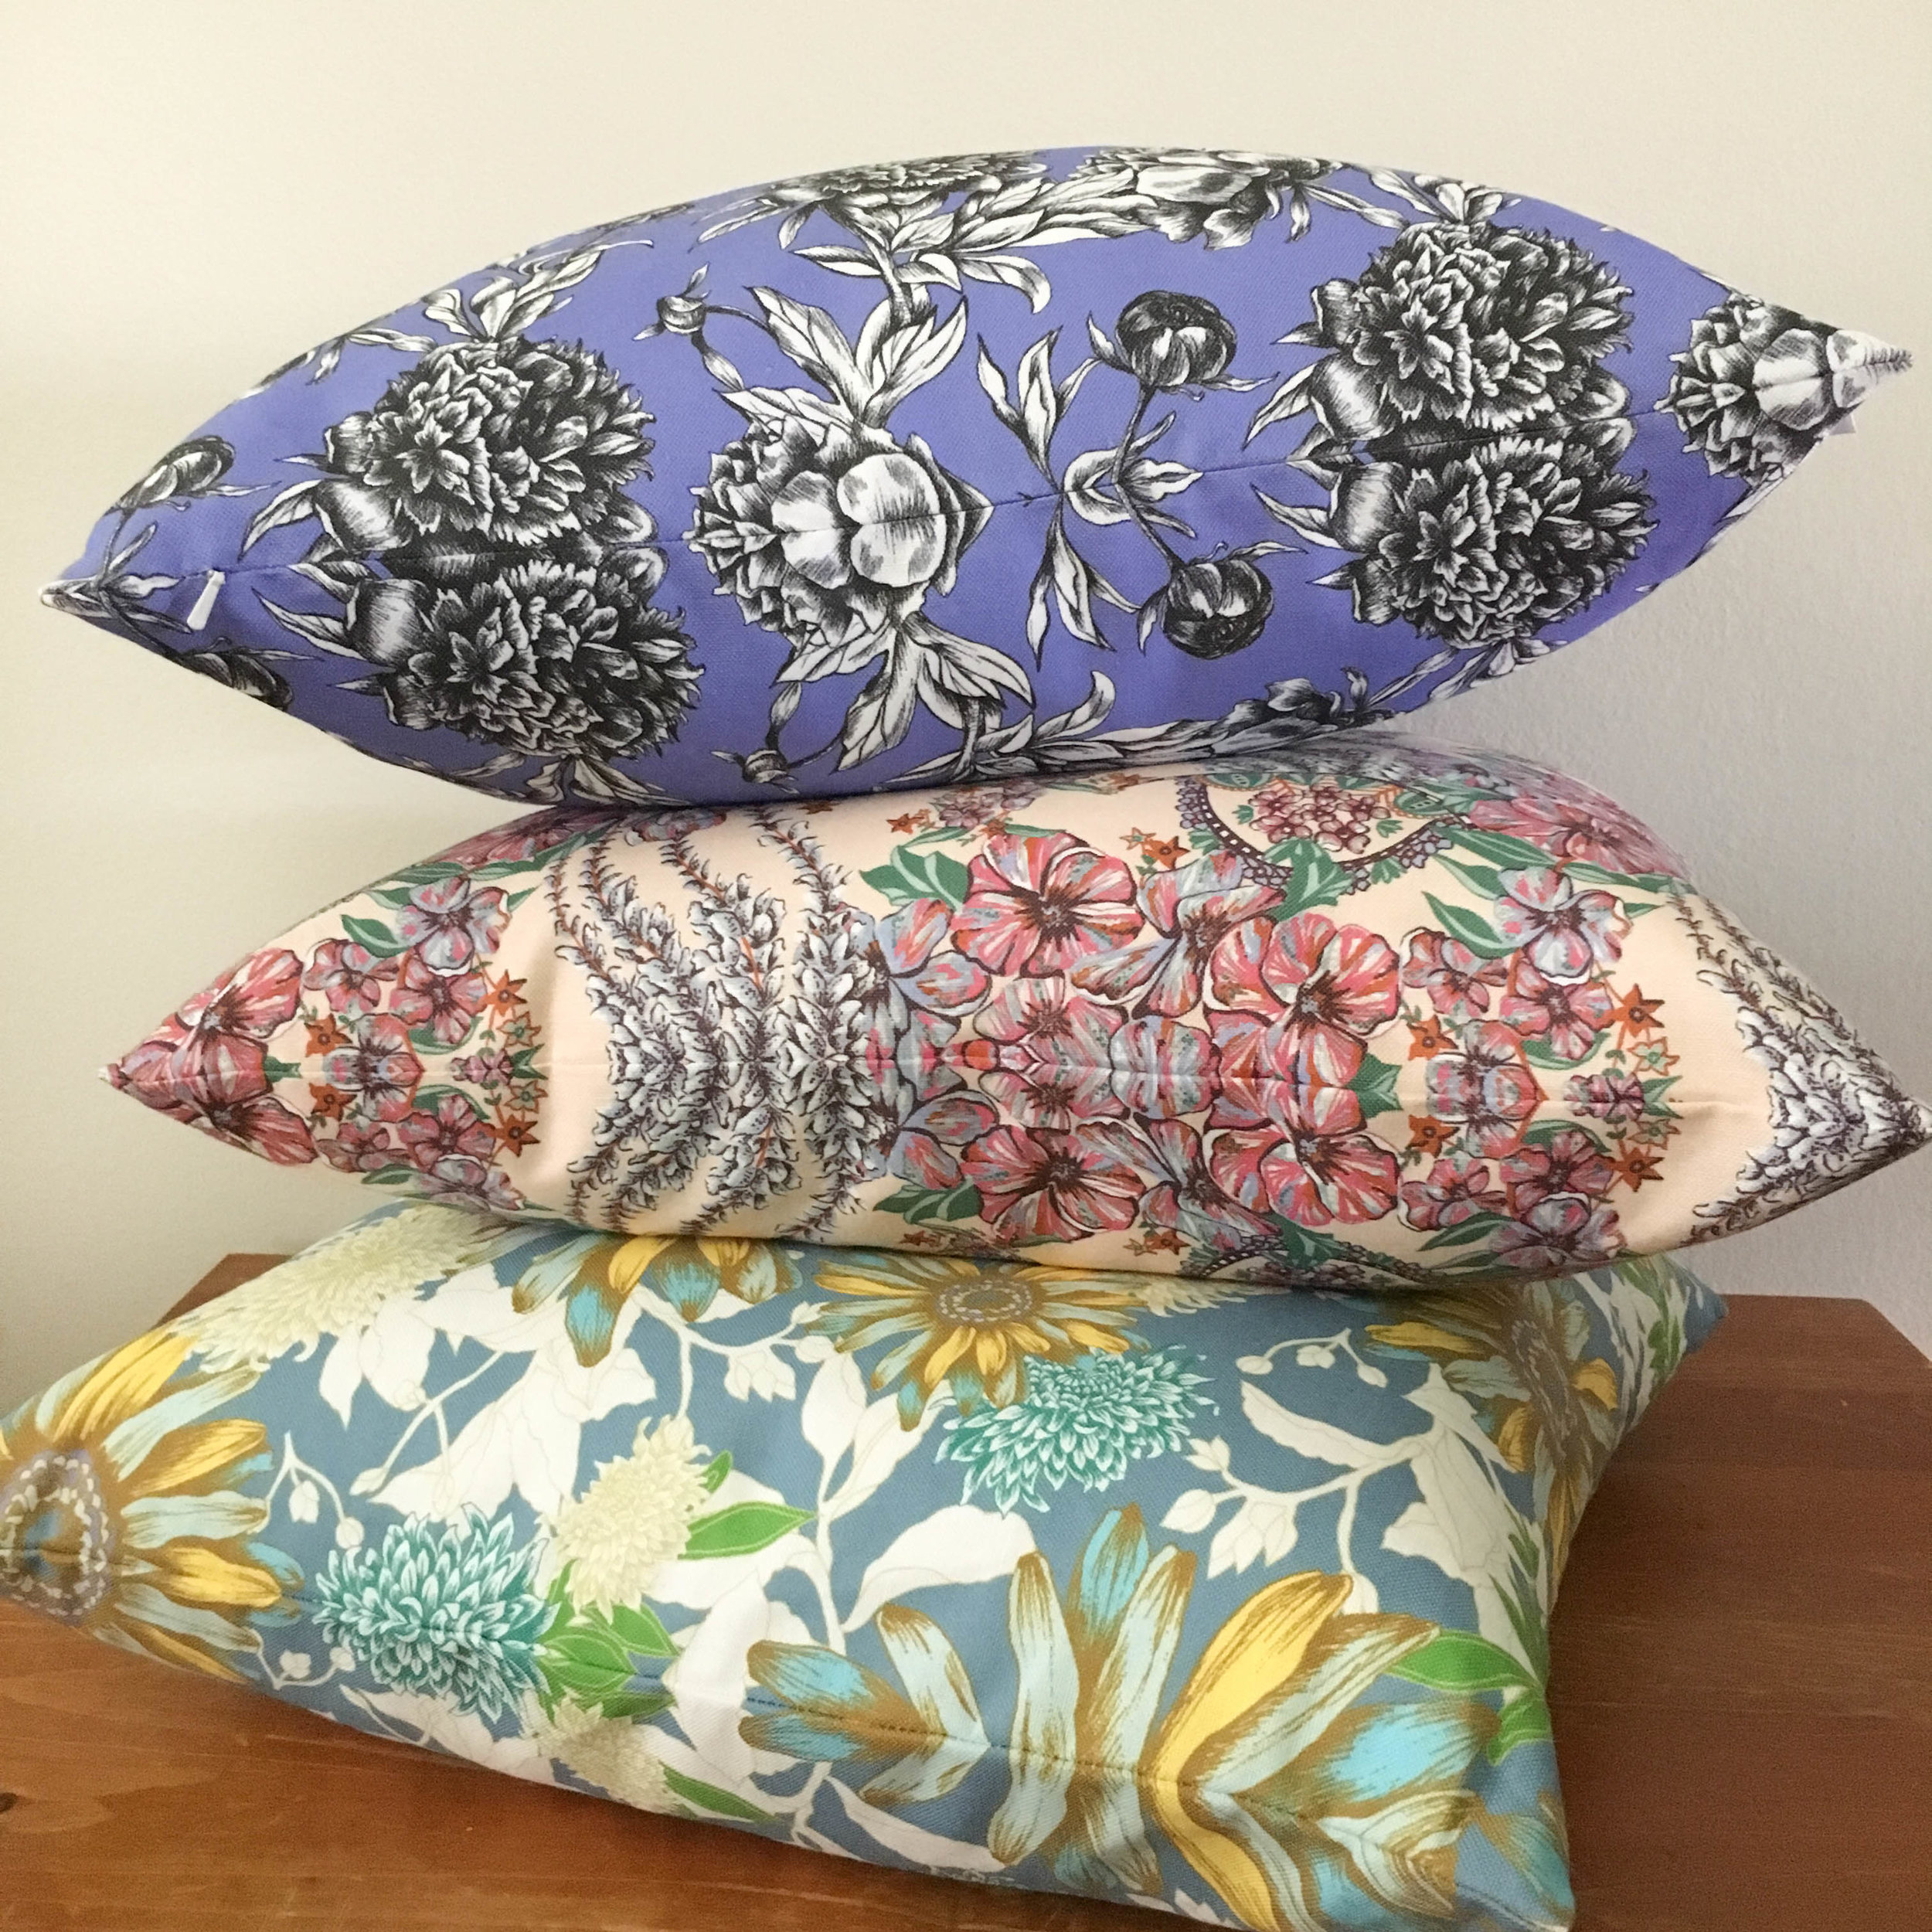 'Paeonia', 'Viola', and 'Gerbera' pillows are sustainable and luxurious. The bright, colorful prints will bring a vibrant look into your home. Rich turquoise, warm golden yellows, boysenberry pinks, and intricate black line work are just a few of the beautiful and unique elements.